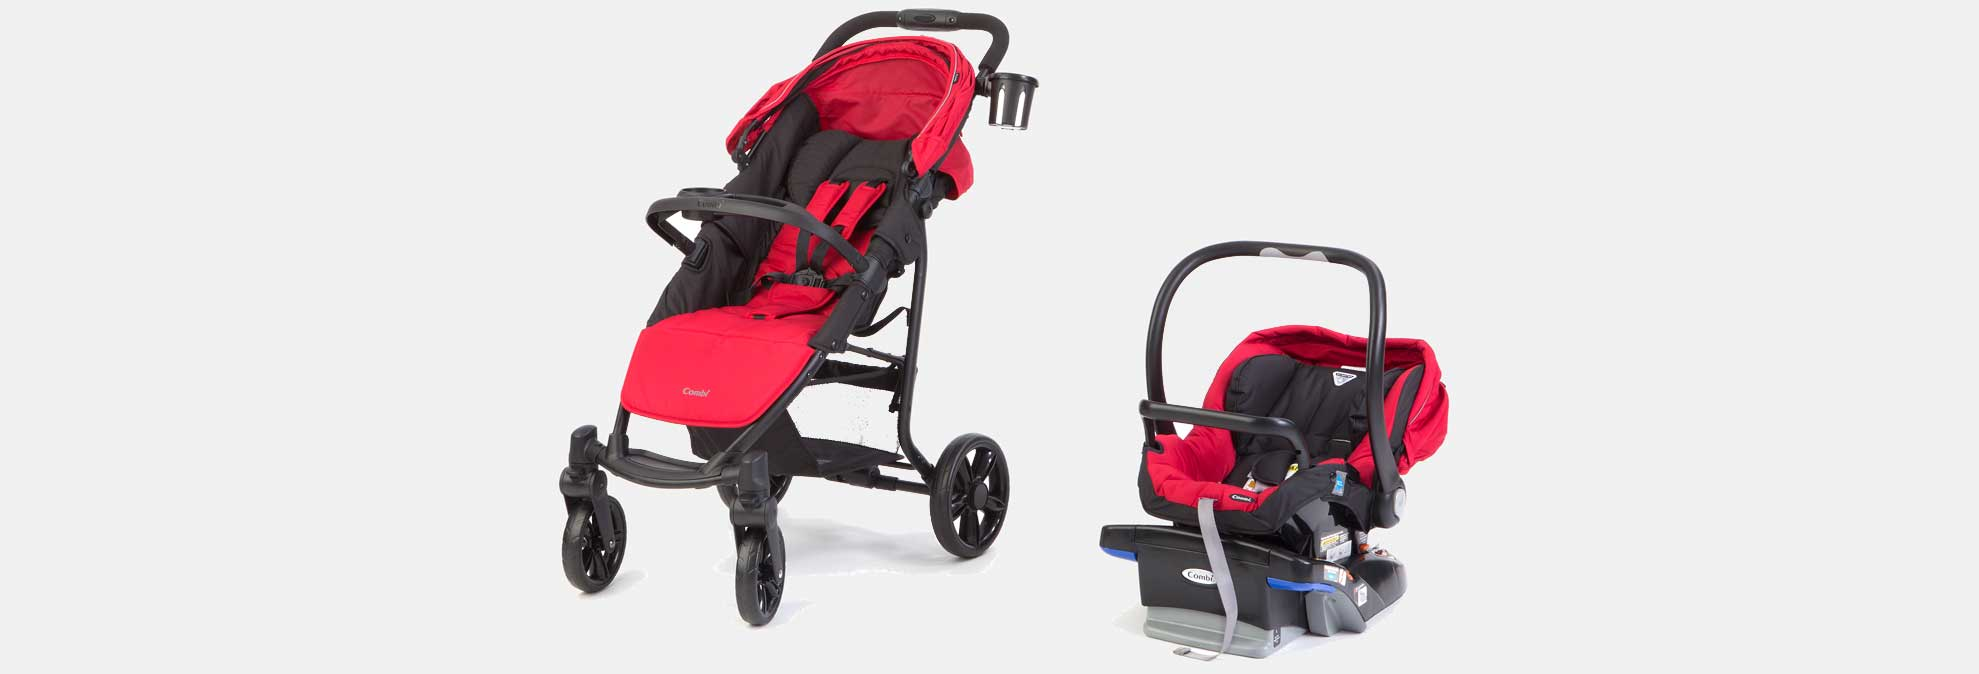 Combi Double Stroller Recall Combi Shuttle Travel System Review Best Gallery